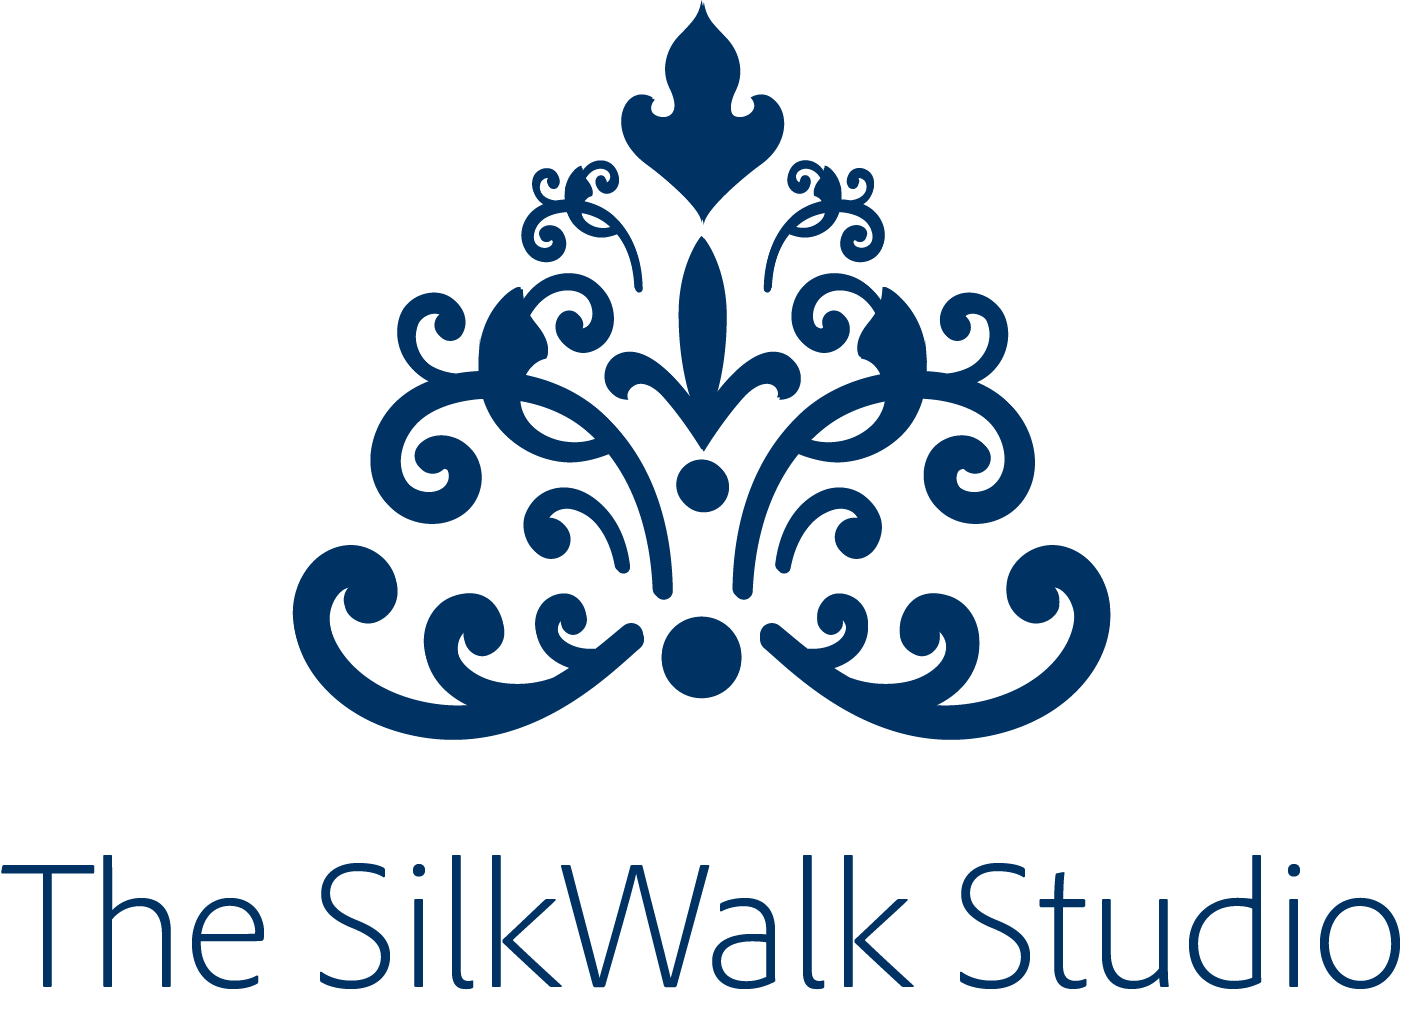 The SilkWalk Studio